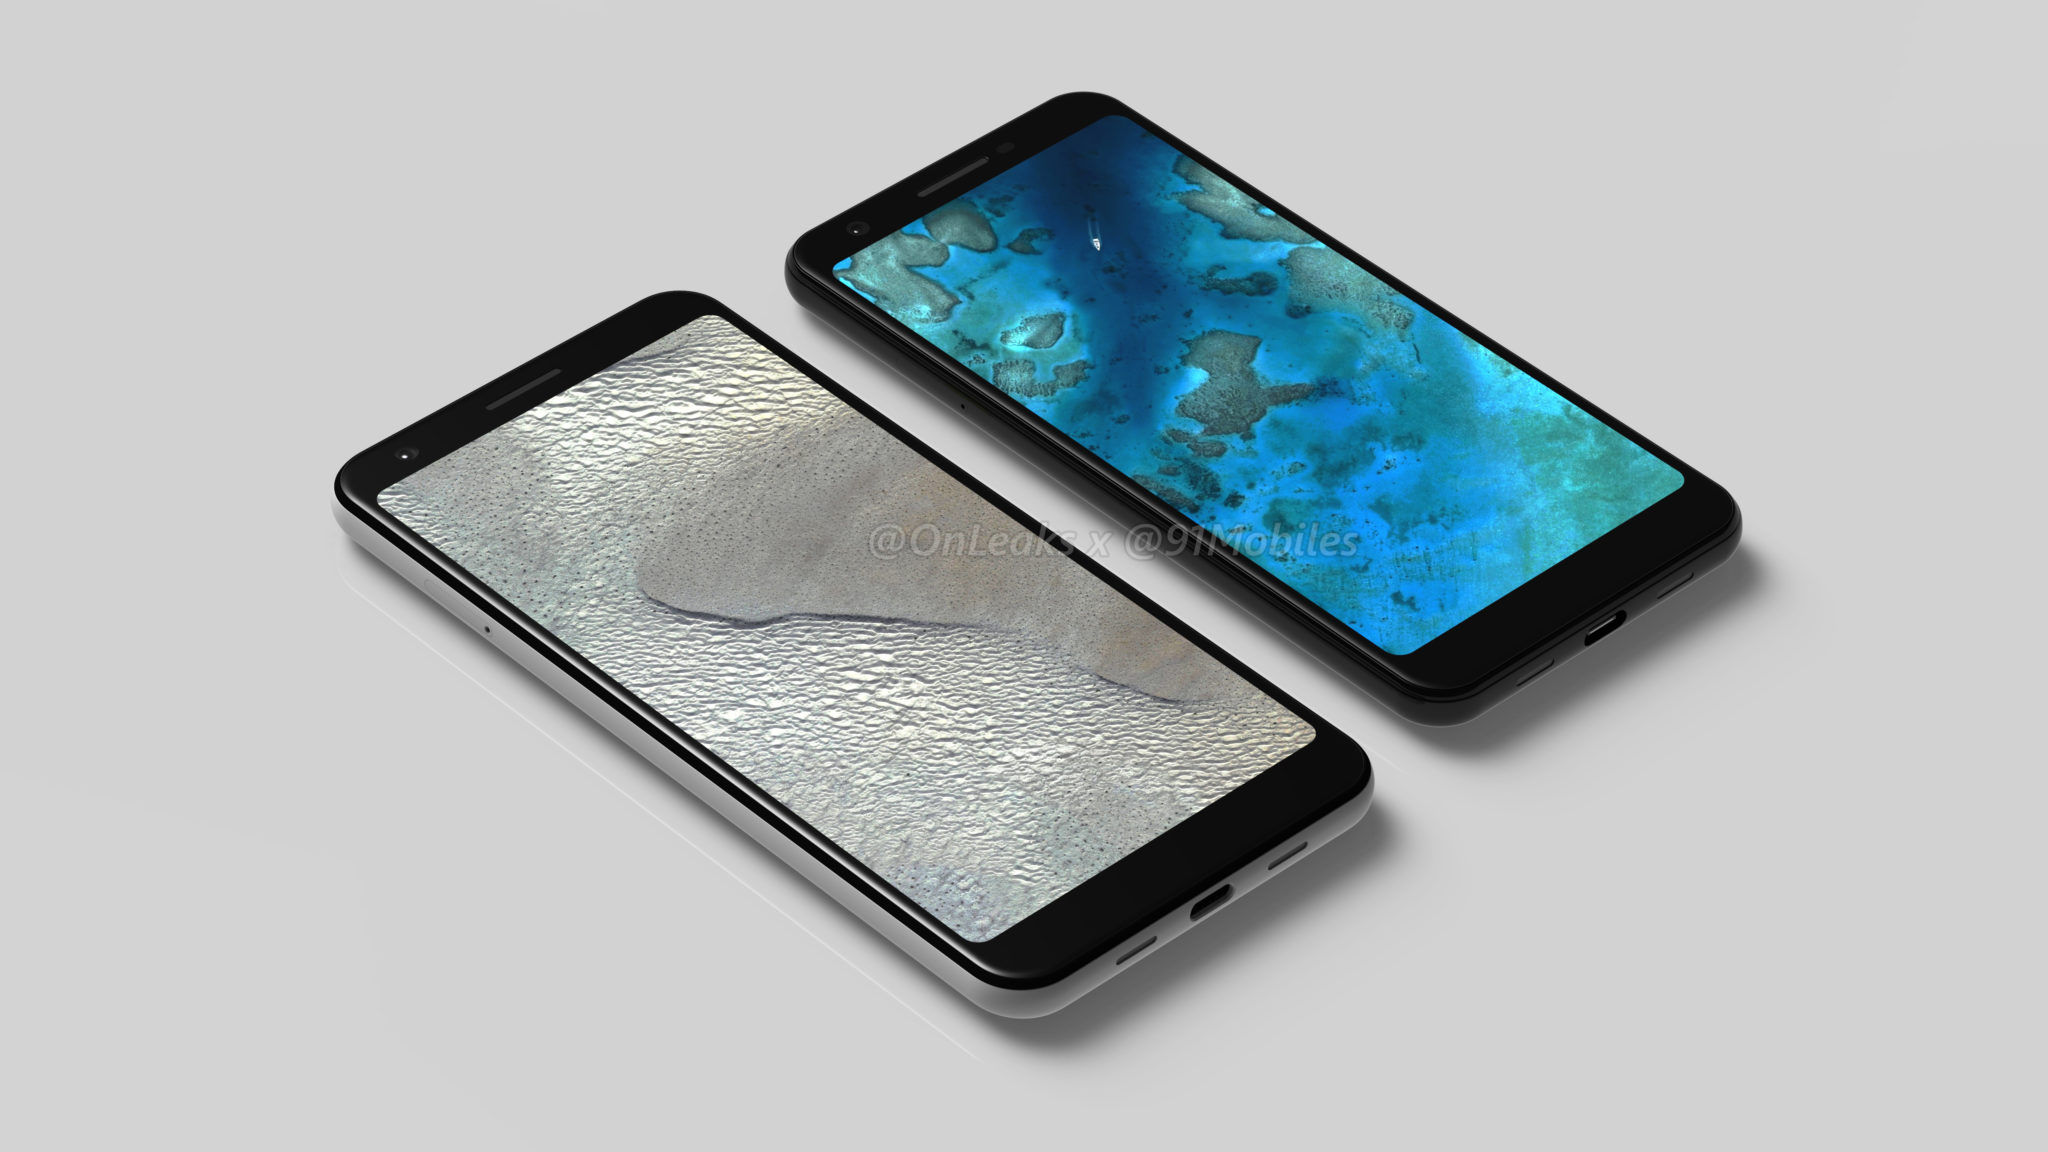 Rumour suggests Google is also working on a Pixel 3 XL Lite